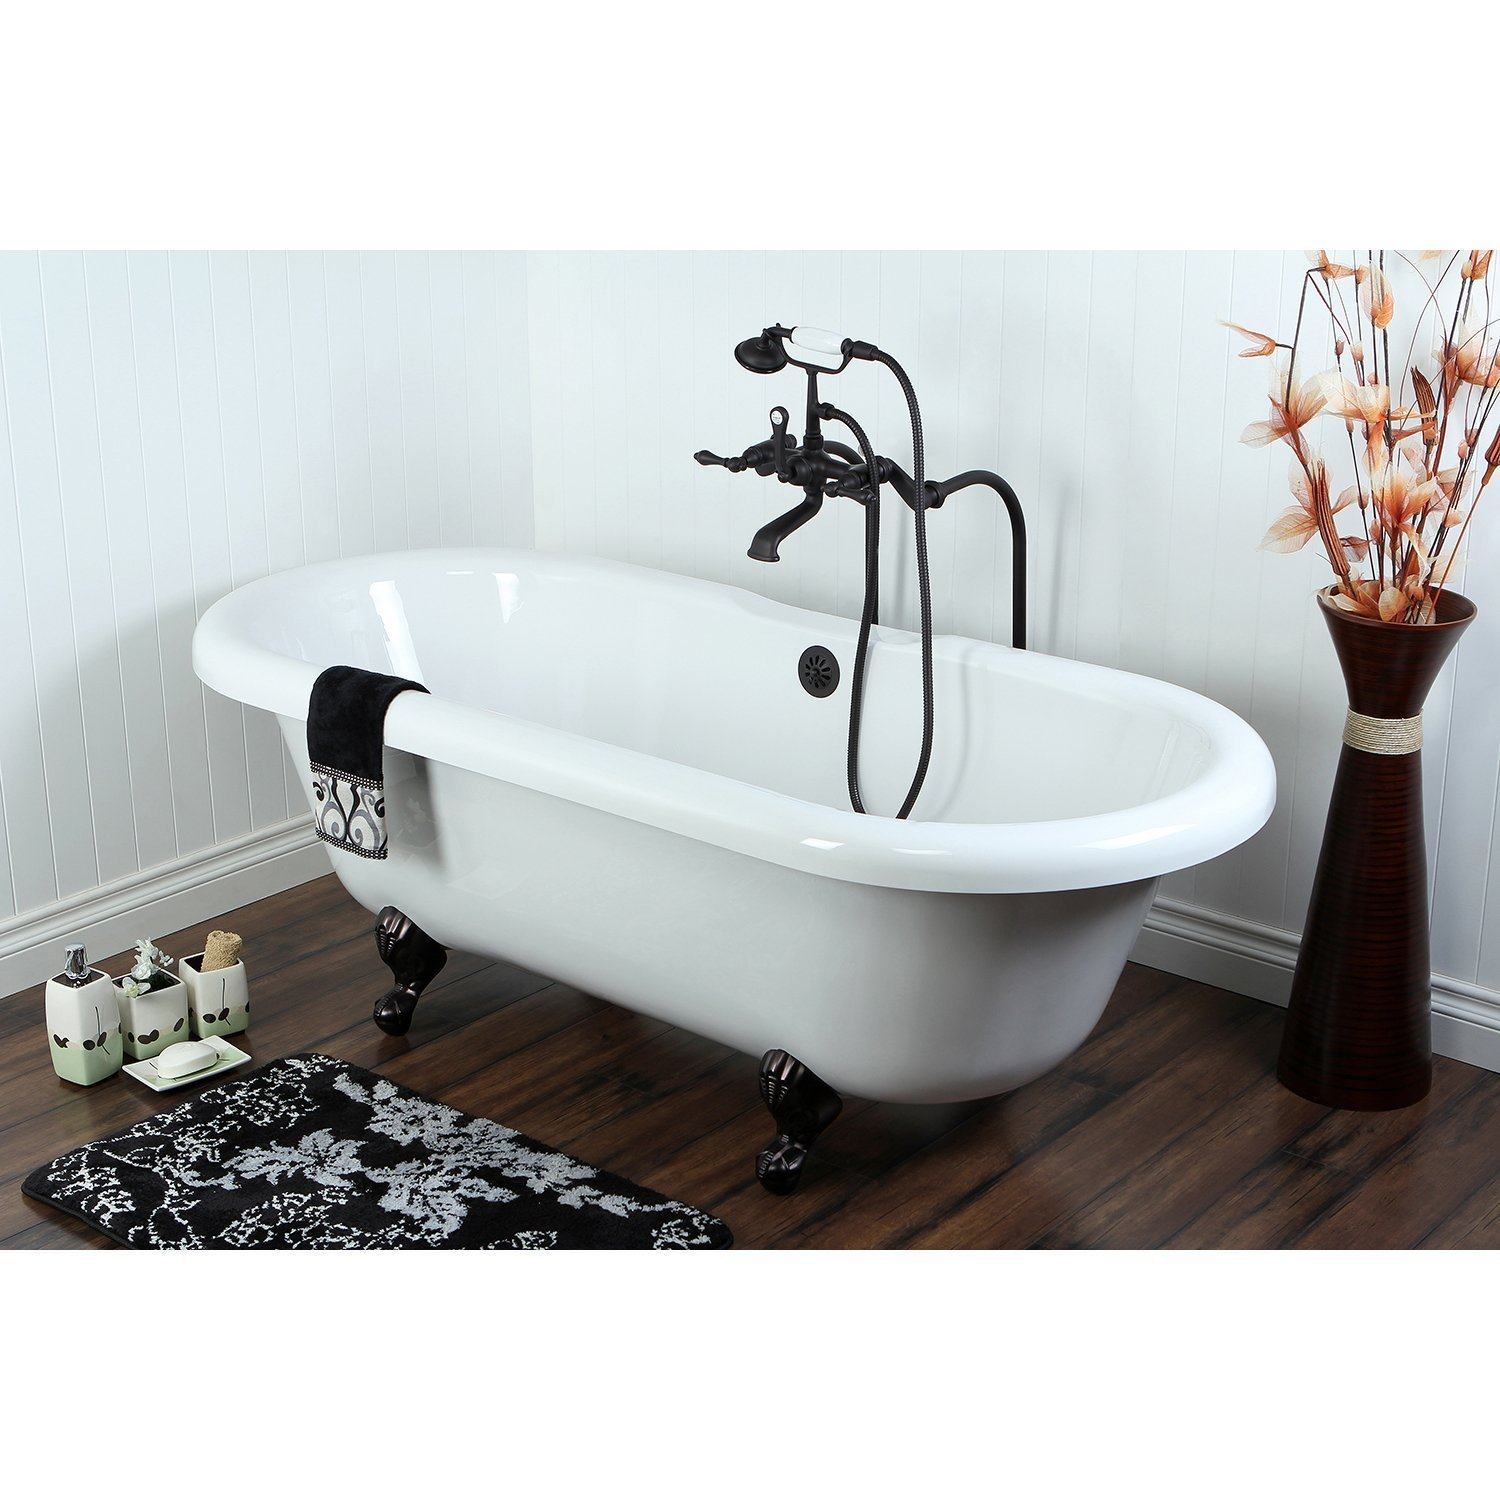 Cheap Tub Floor, find Tub Floor deals on line at Alibaba.com